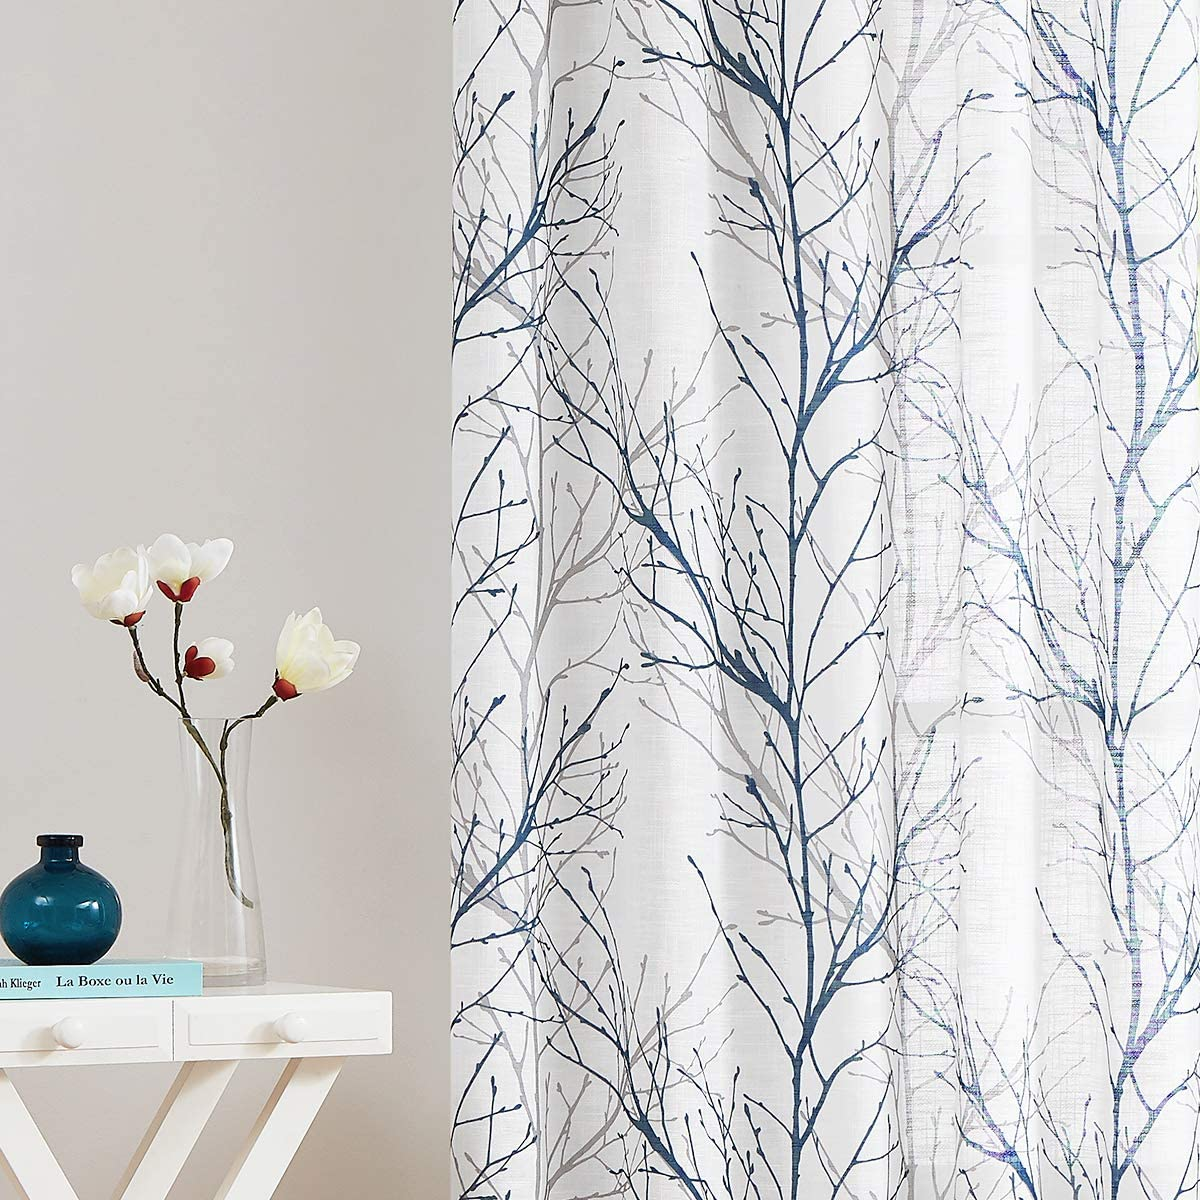 """Blue White Tree Curtains for Living Room 54"""" Grey Branches Print Curtain Set for Small Bedroom Windows Laundry Room Linen Textured Country Rustic Semi-Sheer Drapes for Basement Rod Pocket, 2 Panels"""